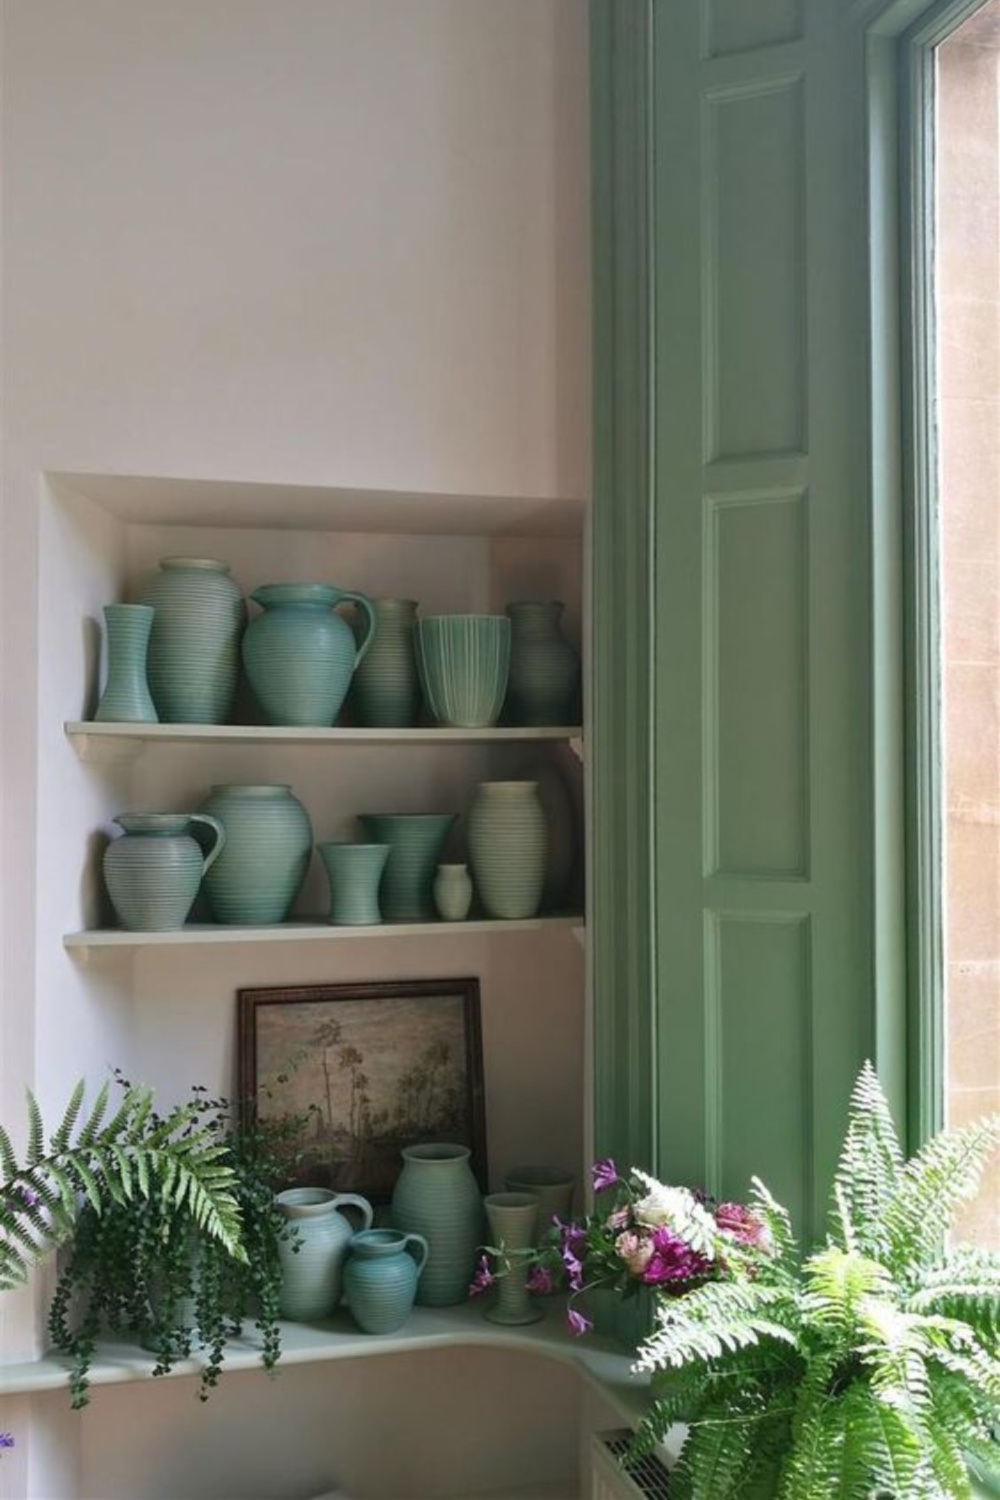 Breakfast Room Green (Farrow & Ball) shutters and light green and jadeite pottery on shelves with ferns. #breakfastroomgreen #greenpaintcolors